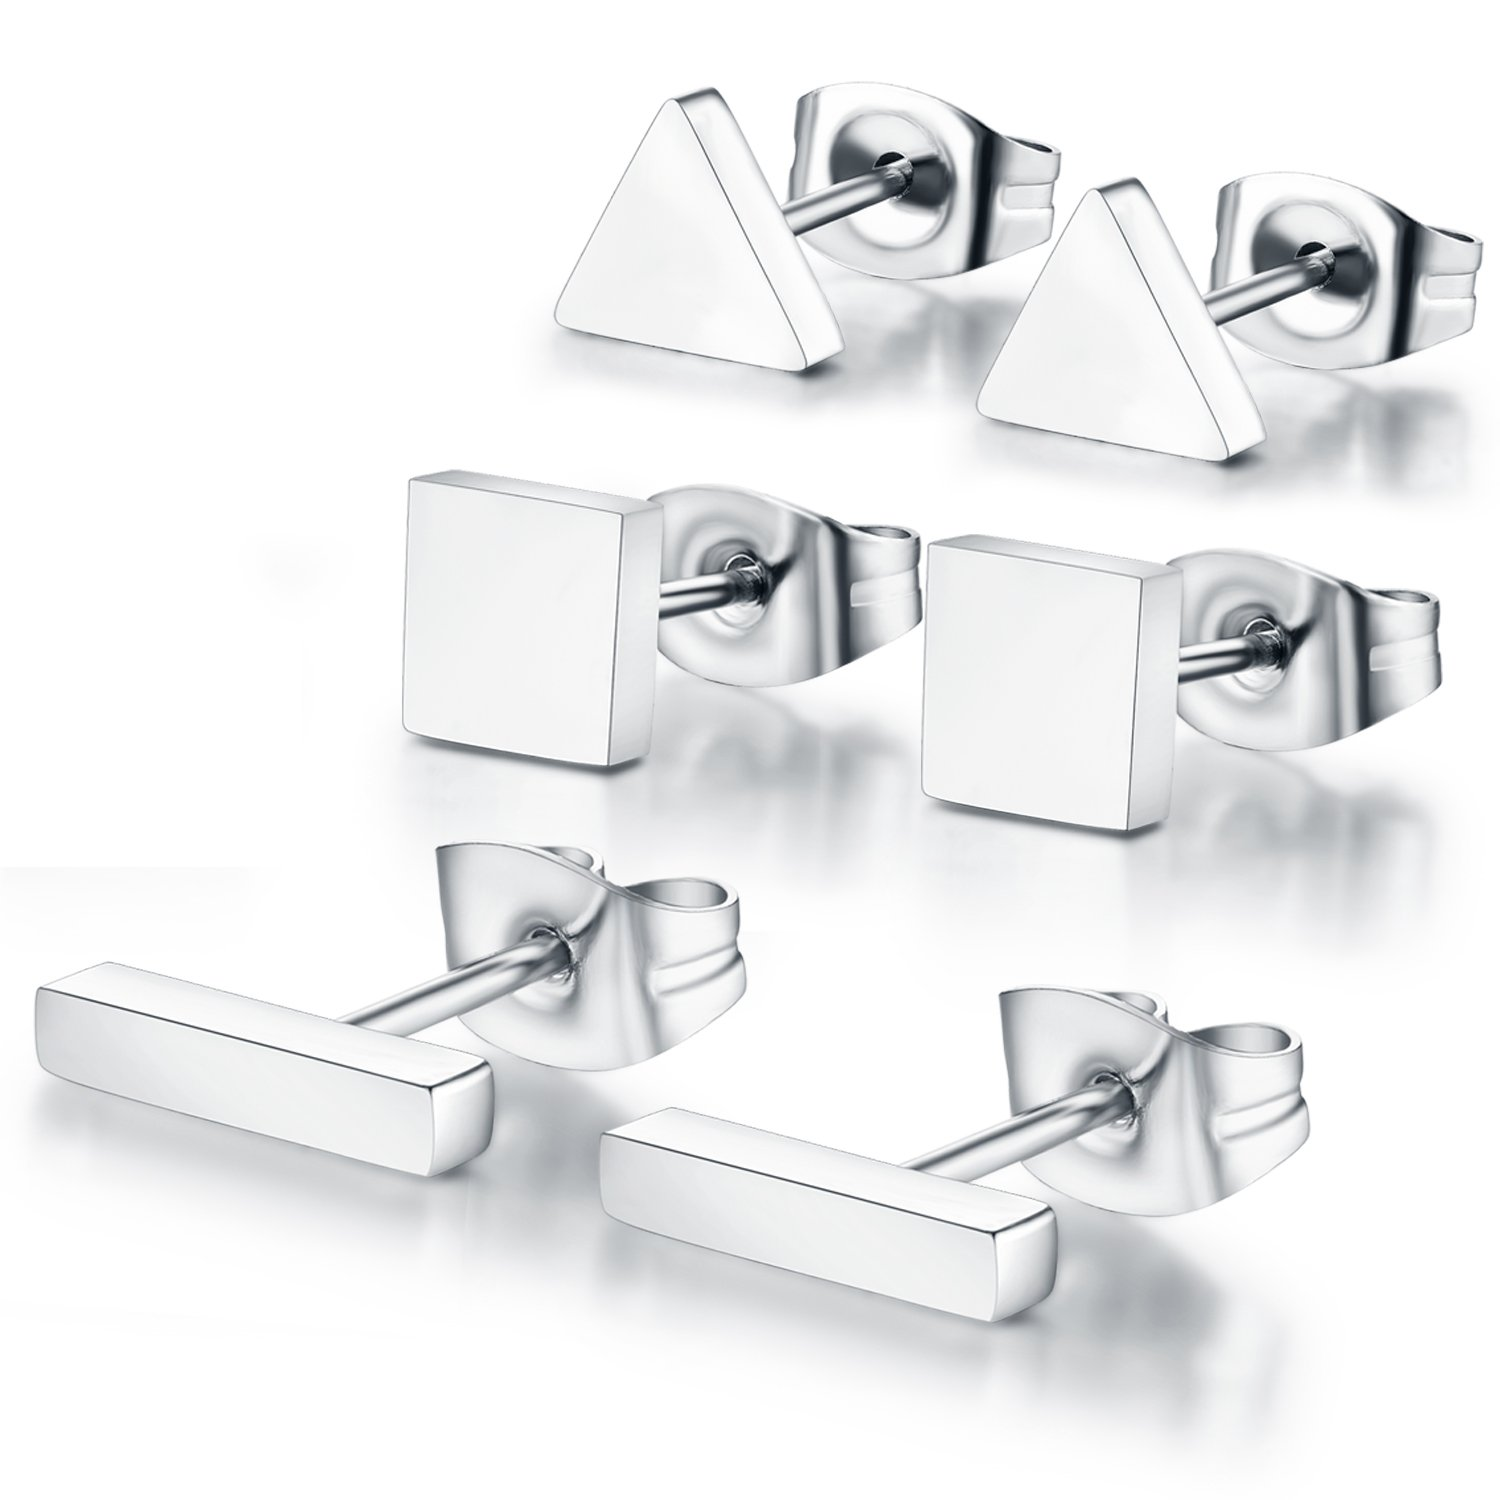 SPINEX 3 Pairs Silver Stud Earring Set Pierced (Rectangle, Square, Triangle) by SPINEX (Image #1)